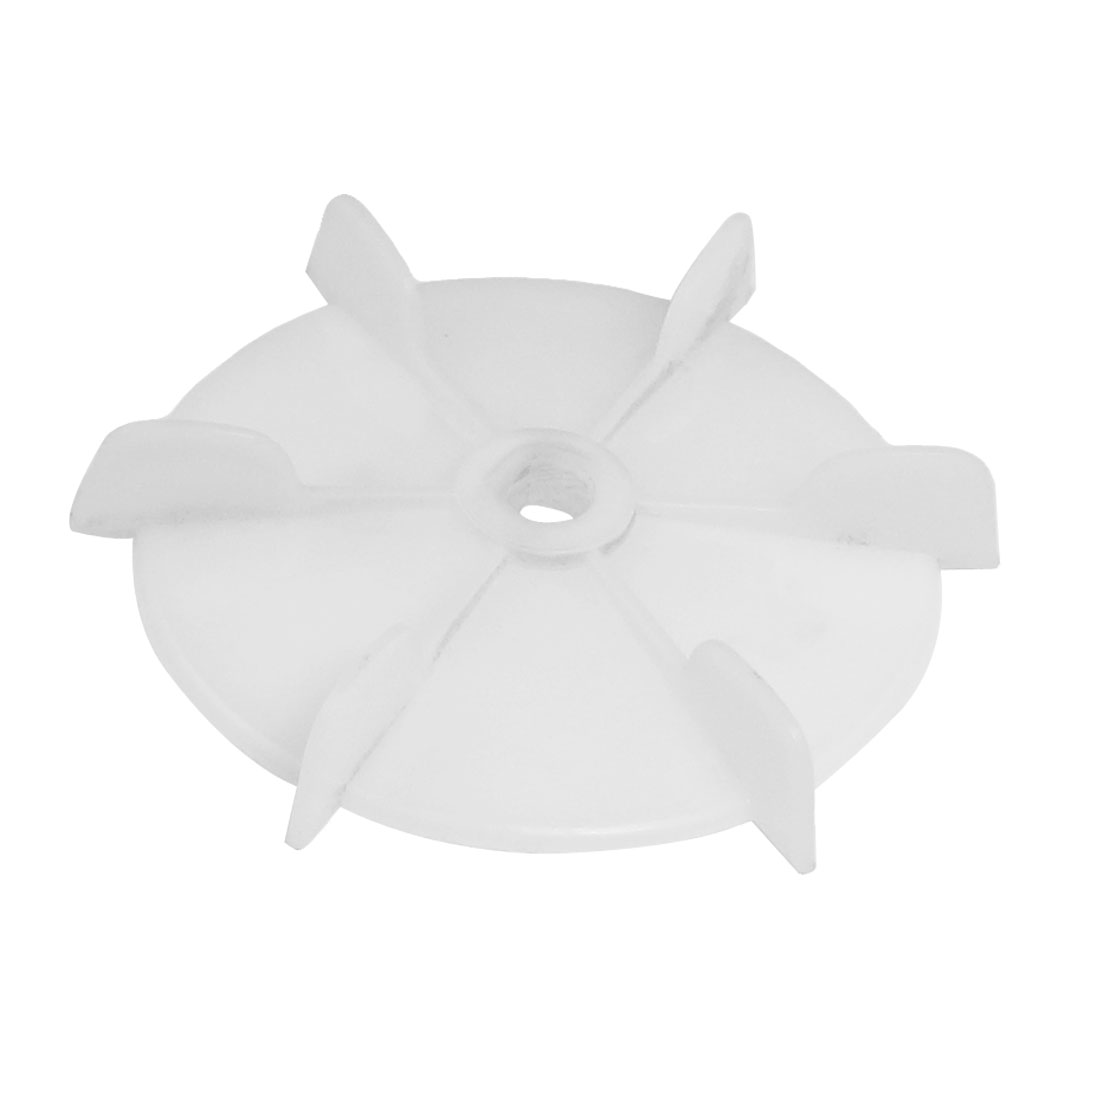 Spare Part 21mm Inner Diameter 6 Vanes Impeller Plastic Motor Fan Vane Wheel